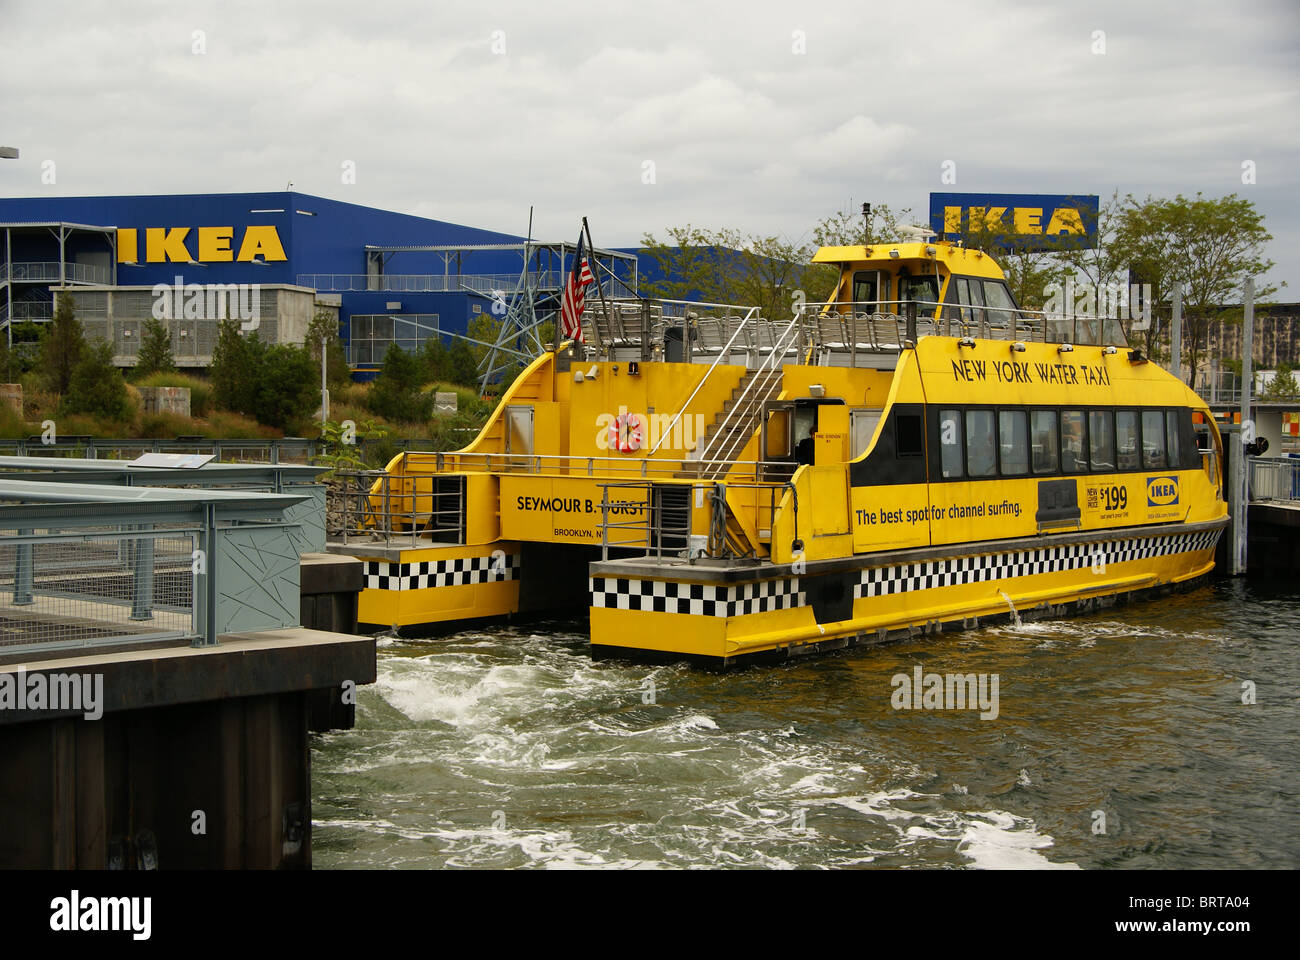 Customers Ikea To Stock Water Brings Taxi In Store BrooklynNy 0nwPOk